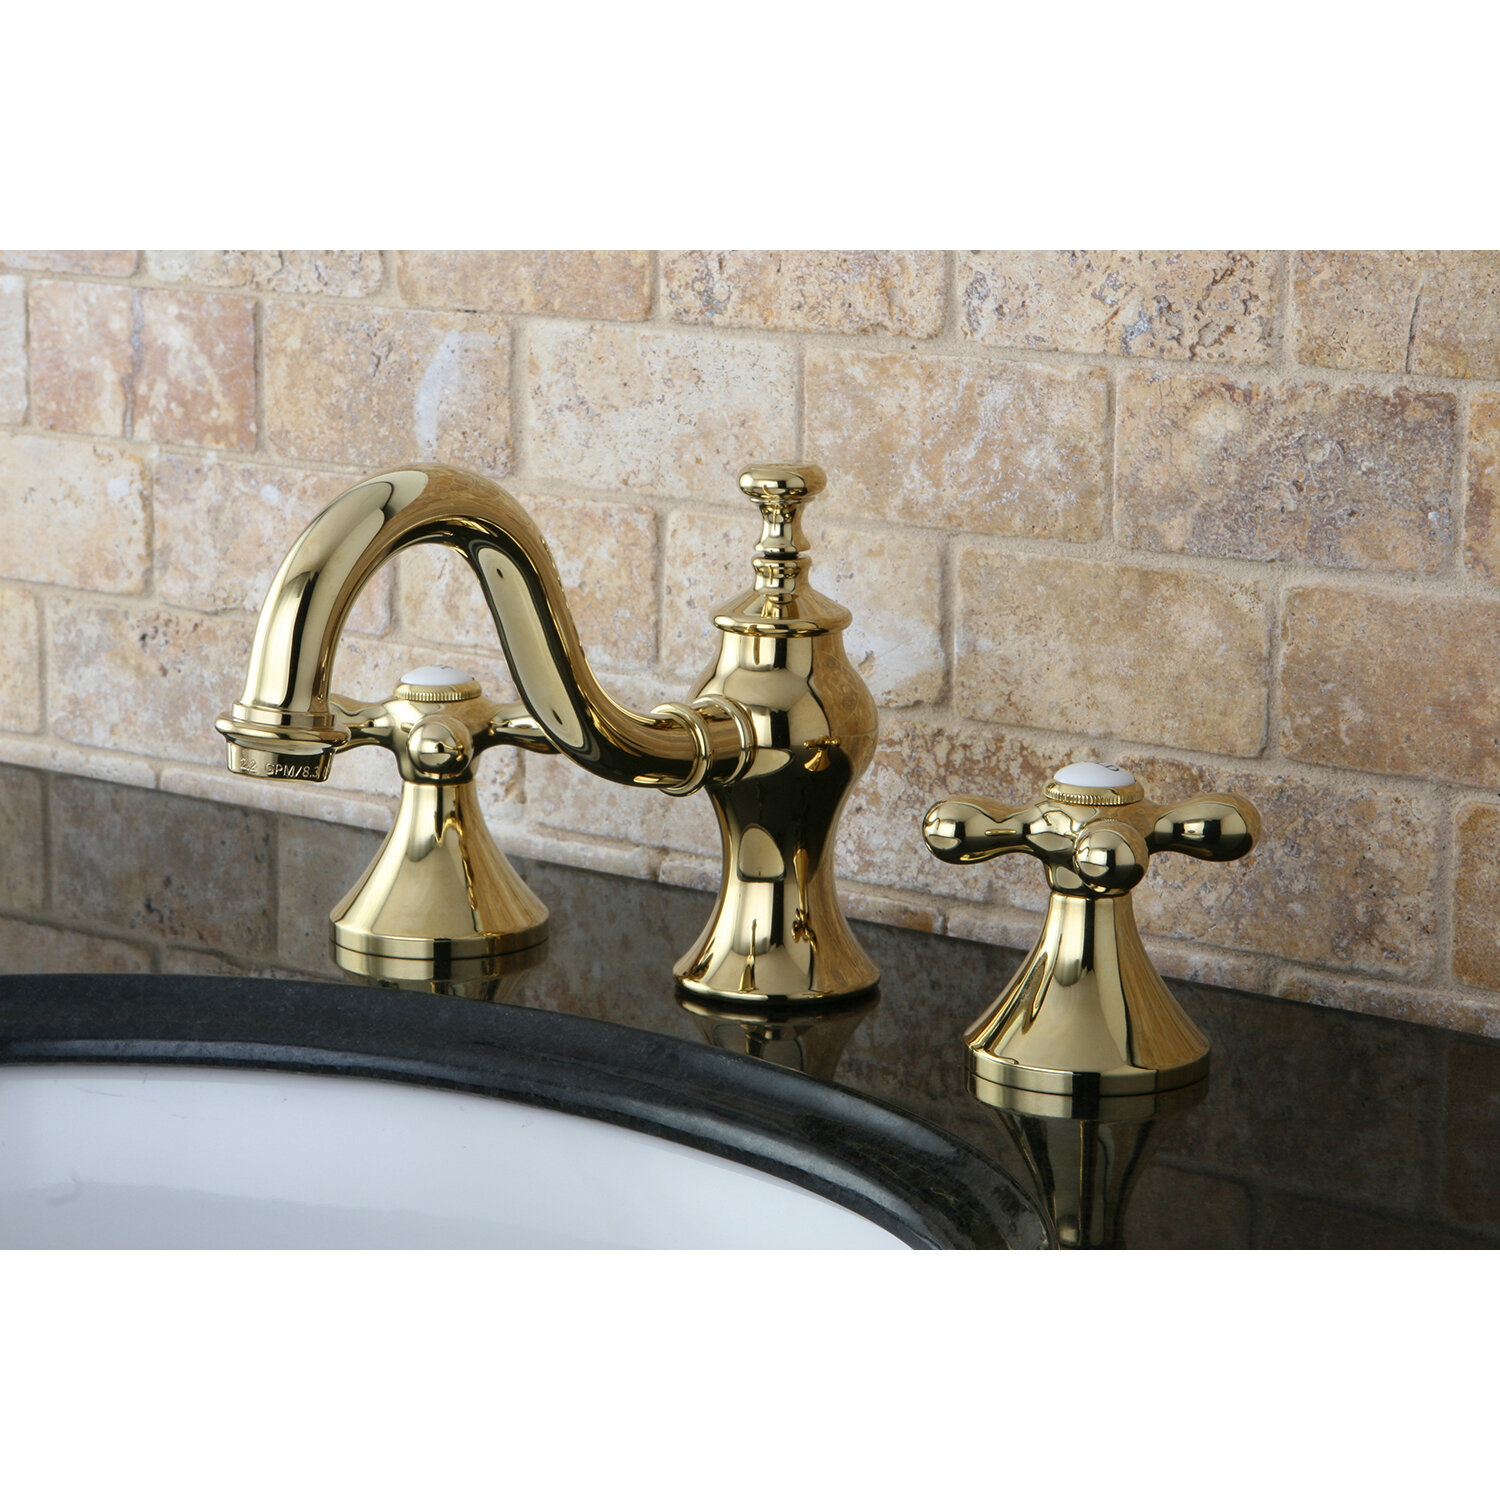 Kingston Brass Vintage Widespread Lavatory Bathroom Faucet with ...